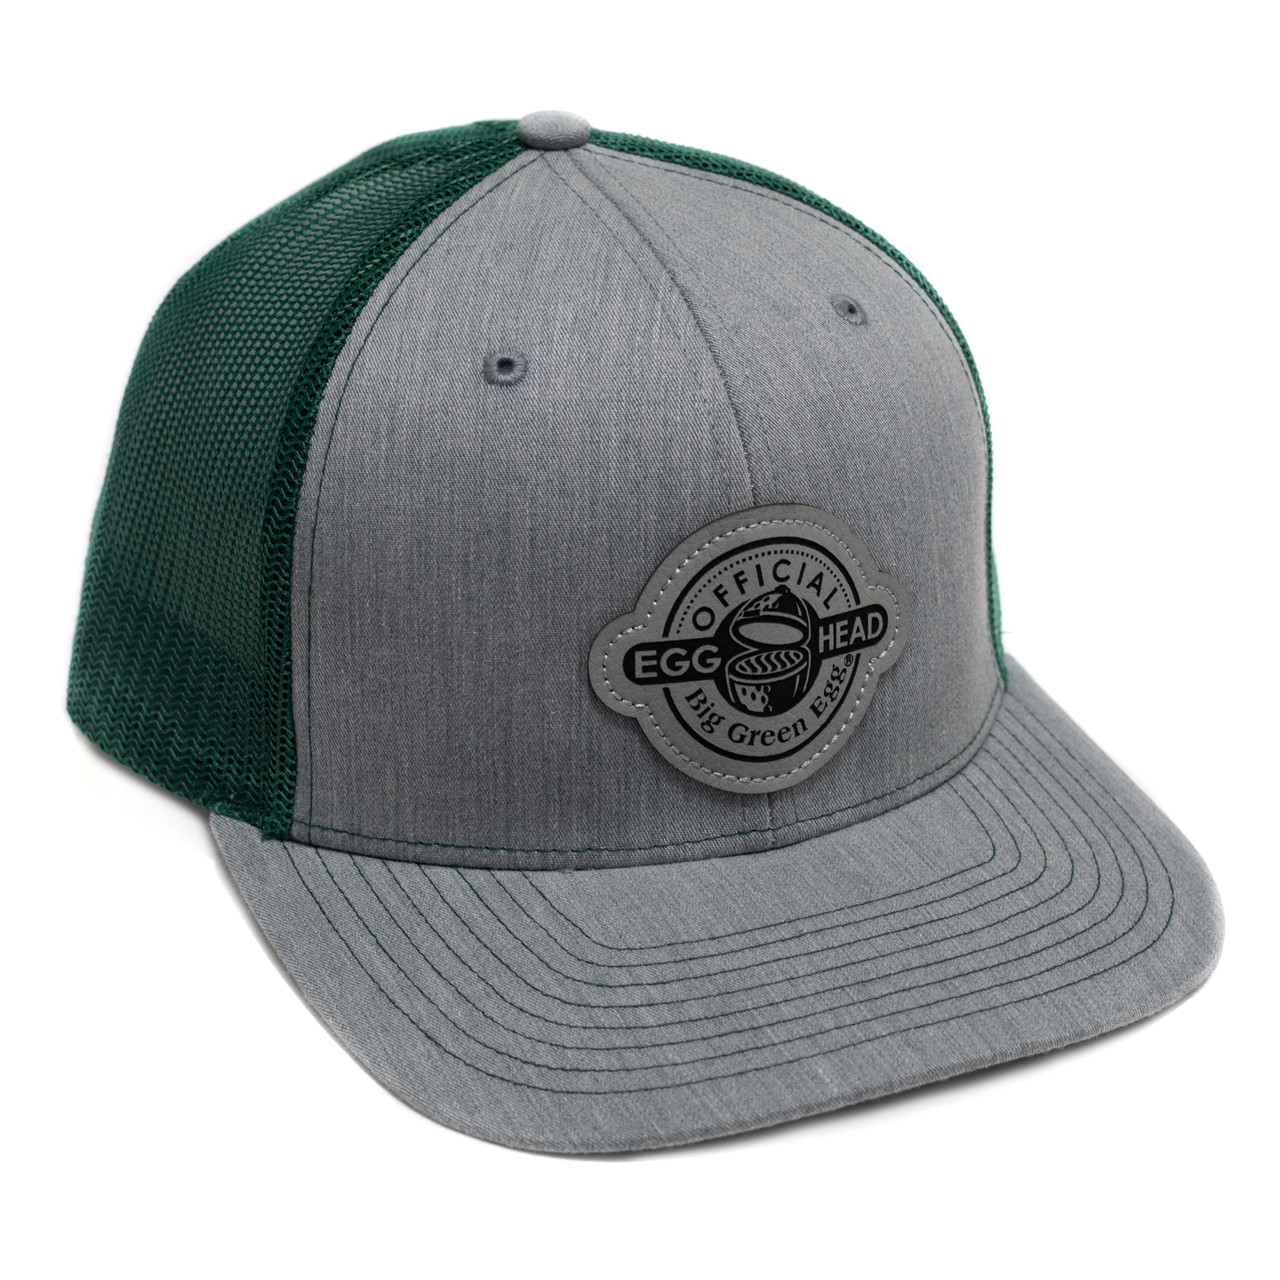 Green Leather Patch Baseball Cap